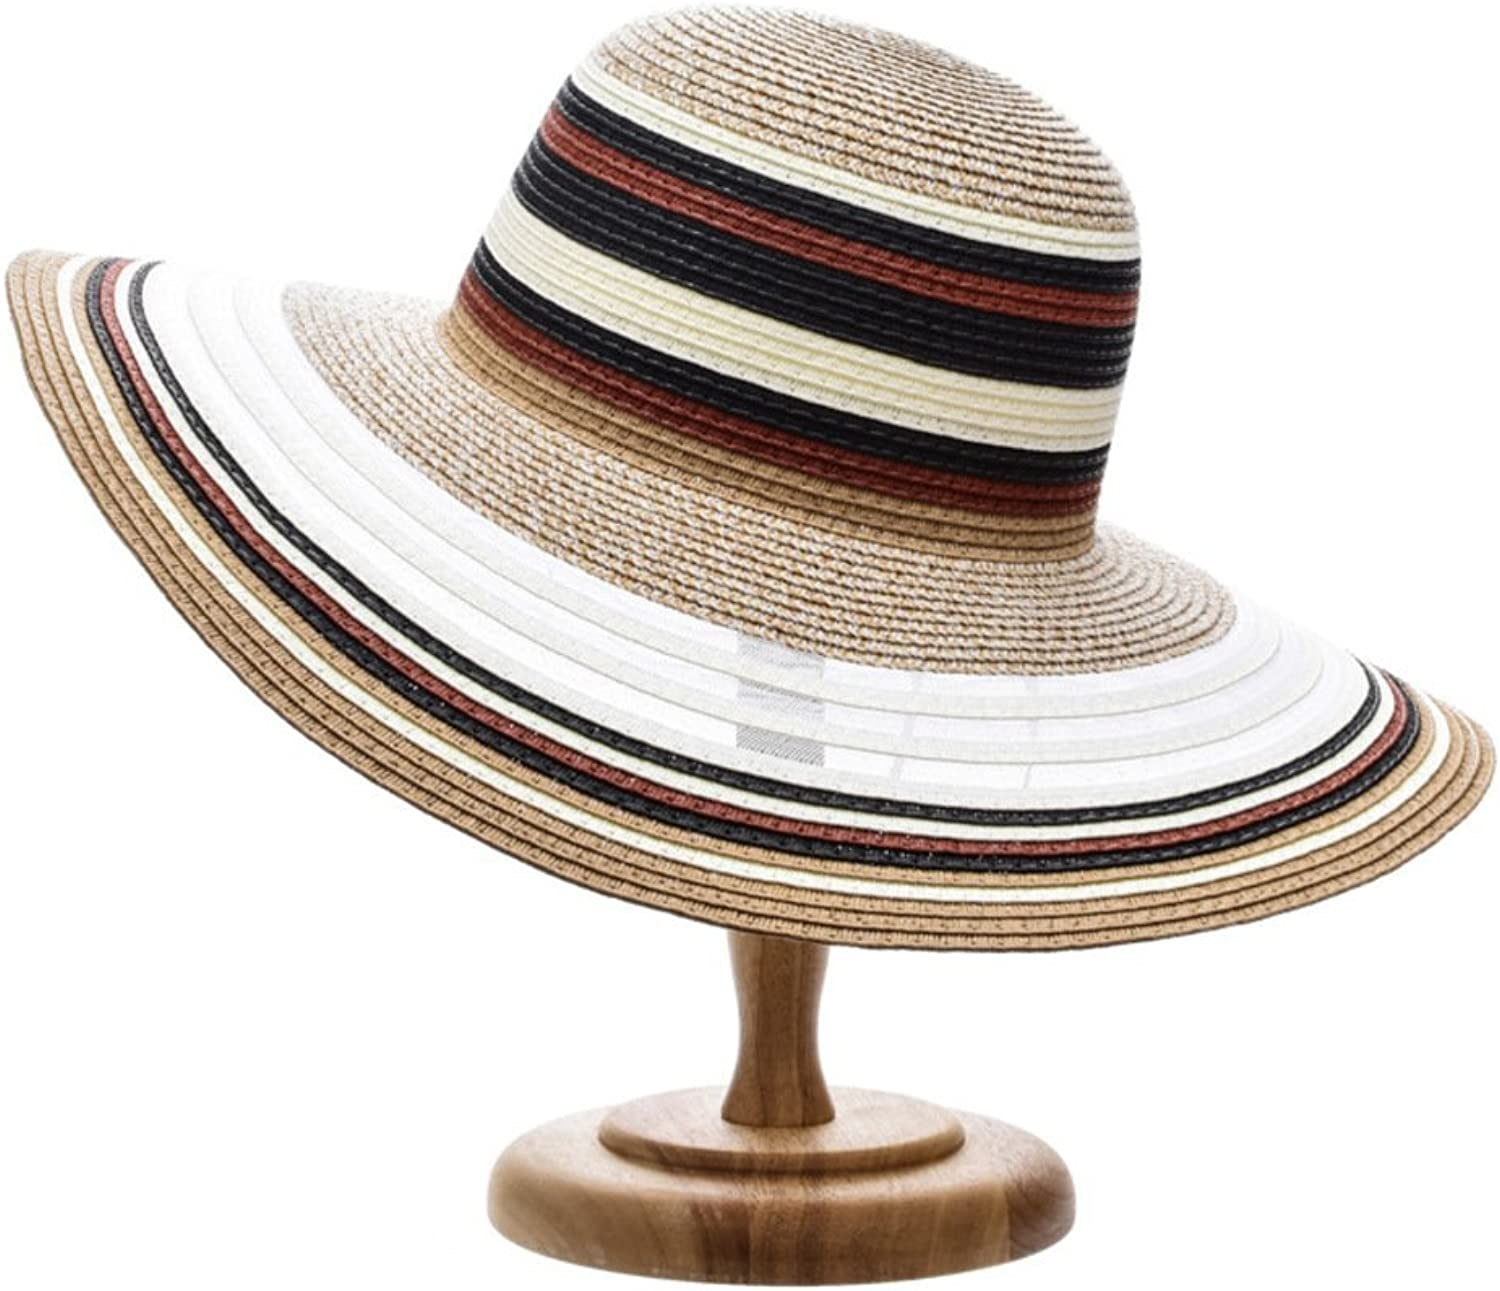 XiongDaDa Sun Hat for Women,Straw Hat Ladies Beach Hats Striscia Assorted colors Weave